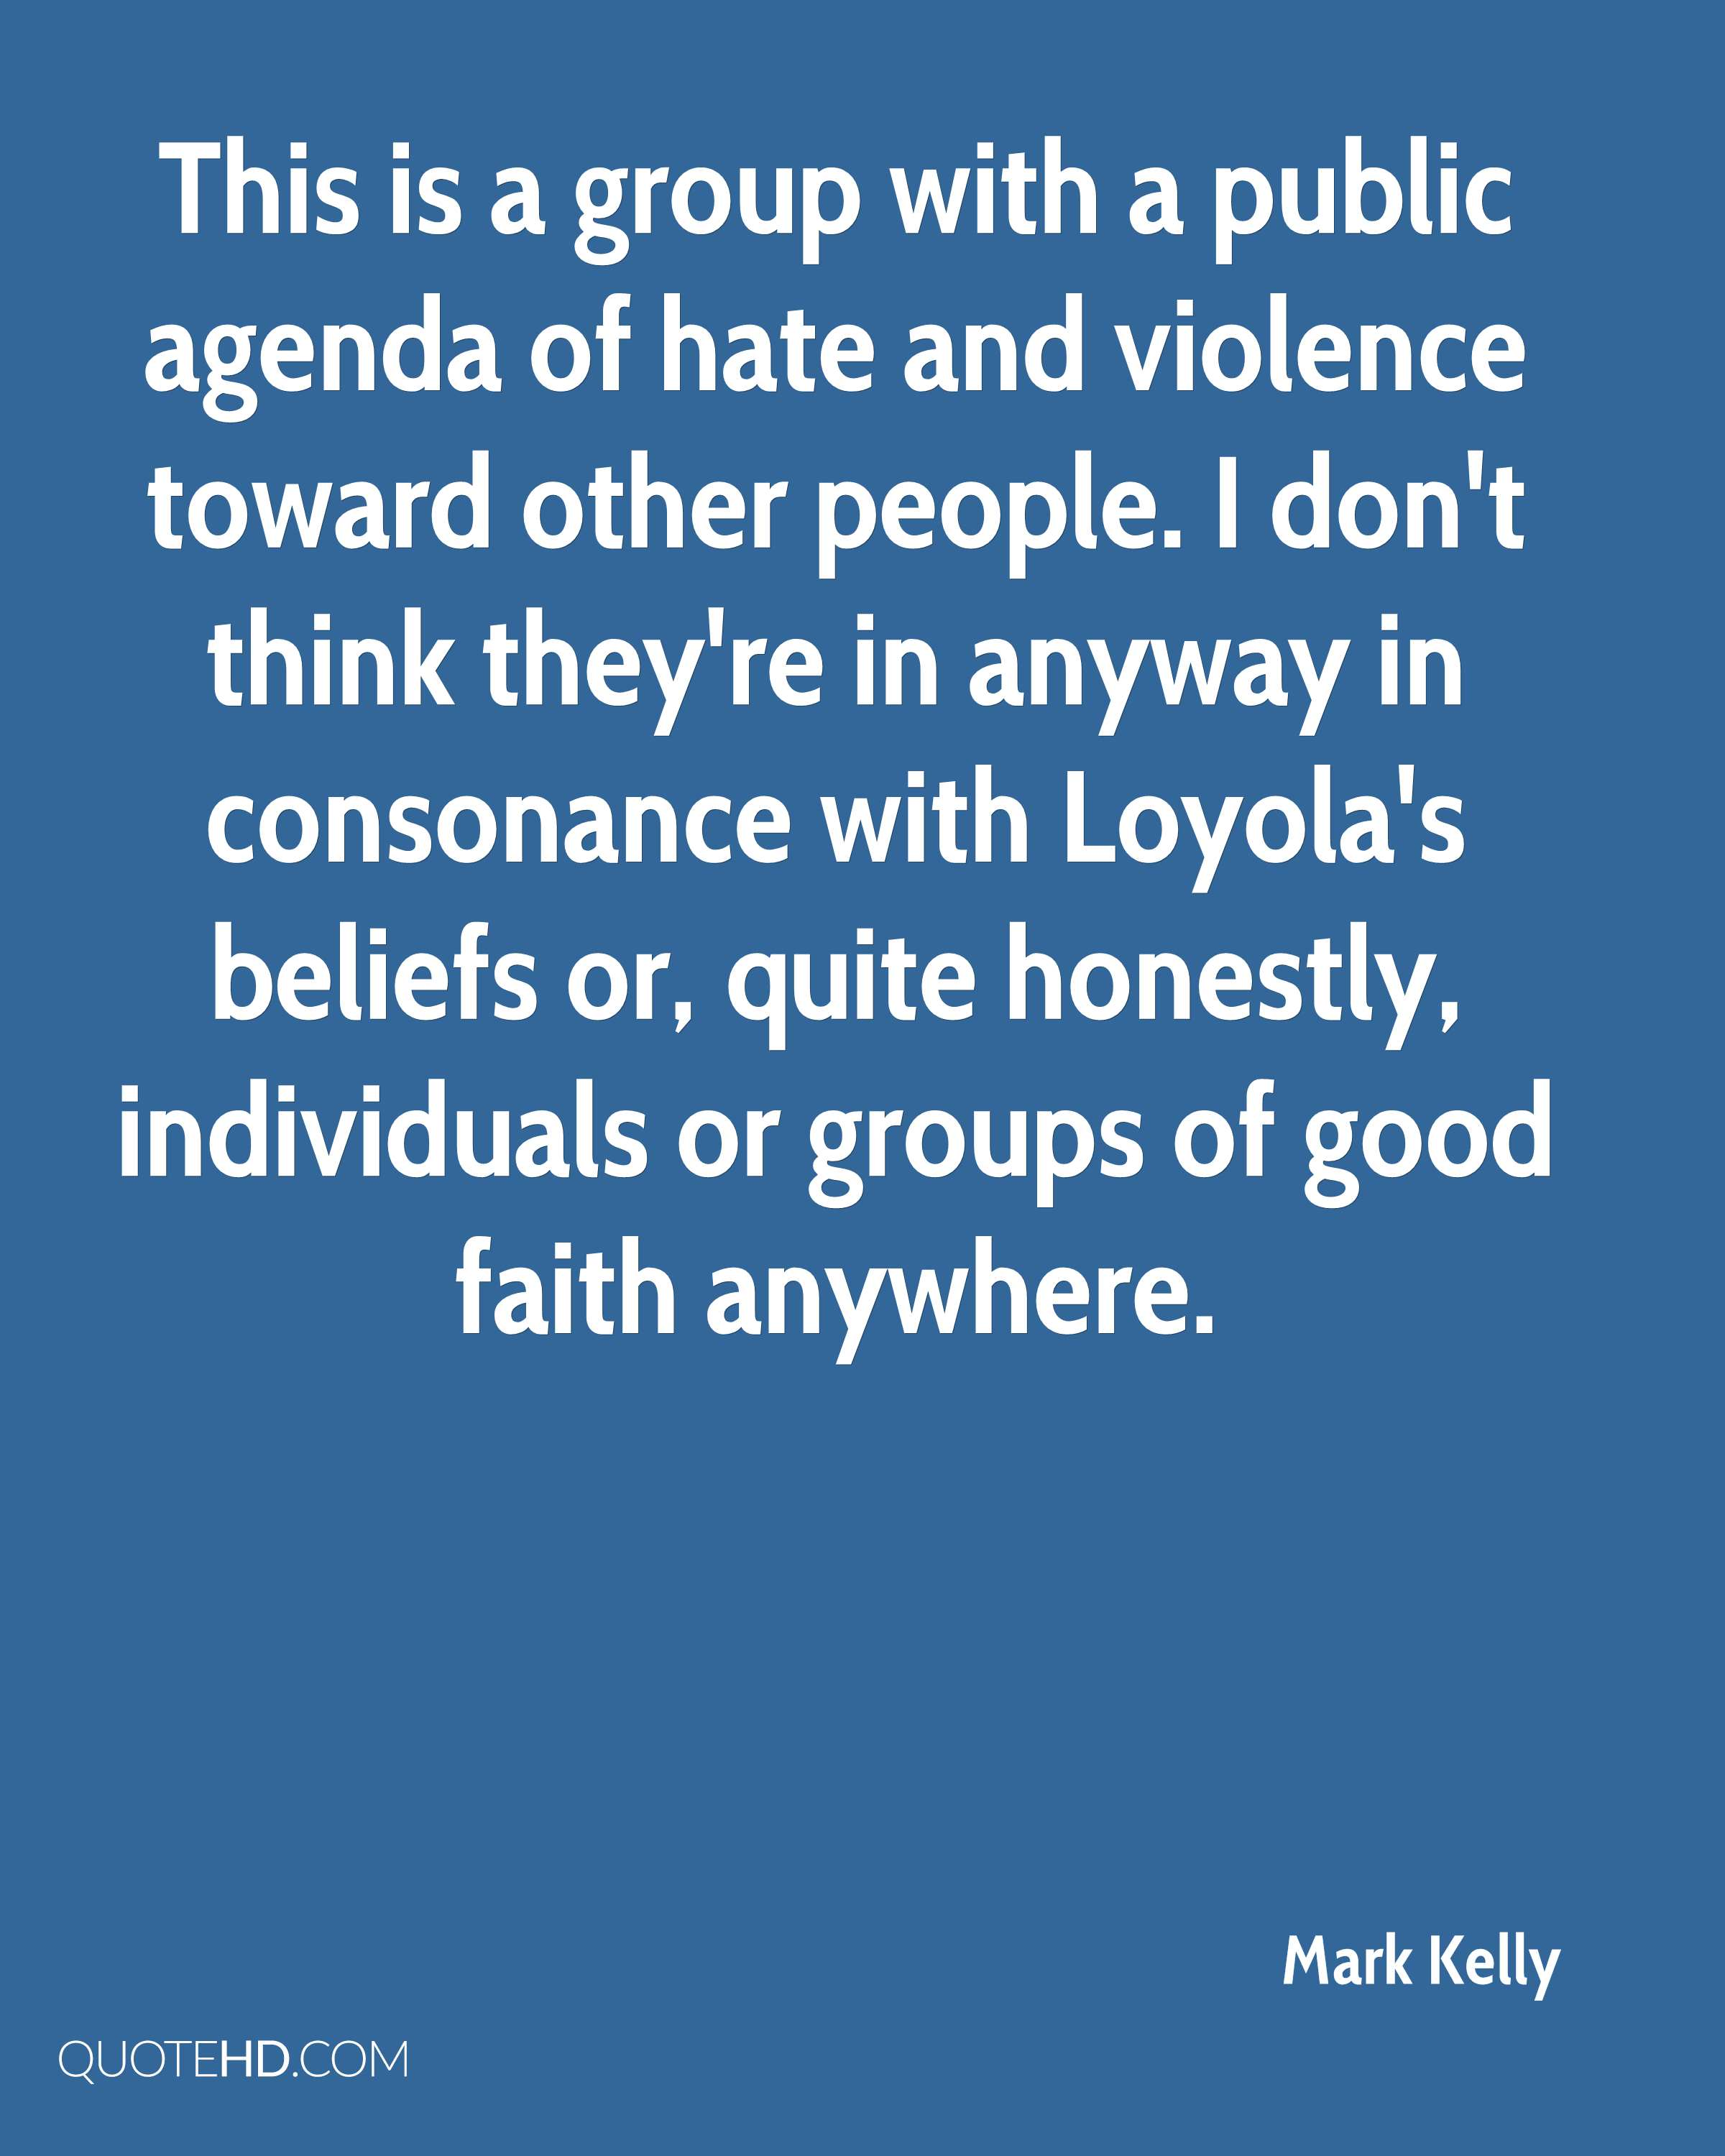 This is a group with a public agenda of hate and violence toward other people. I don't think they're in anyway in consonance with Loyola's beliefs or, quite honestly, individuals or groups of good faith anywhere.